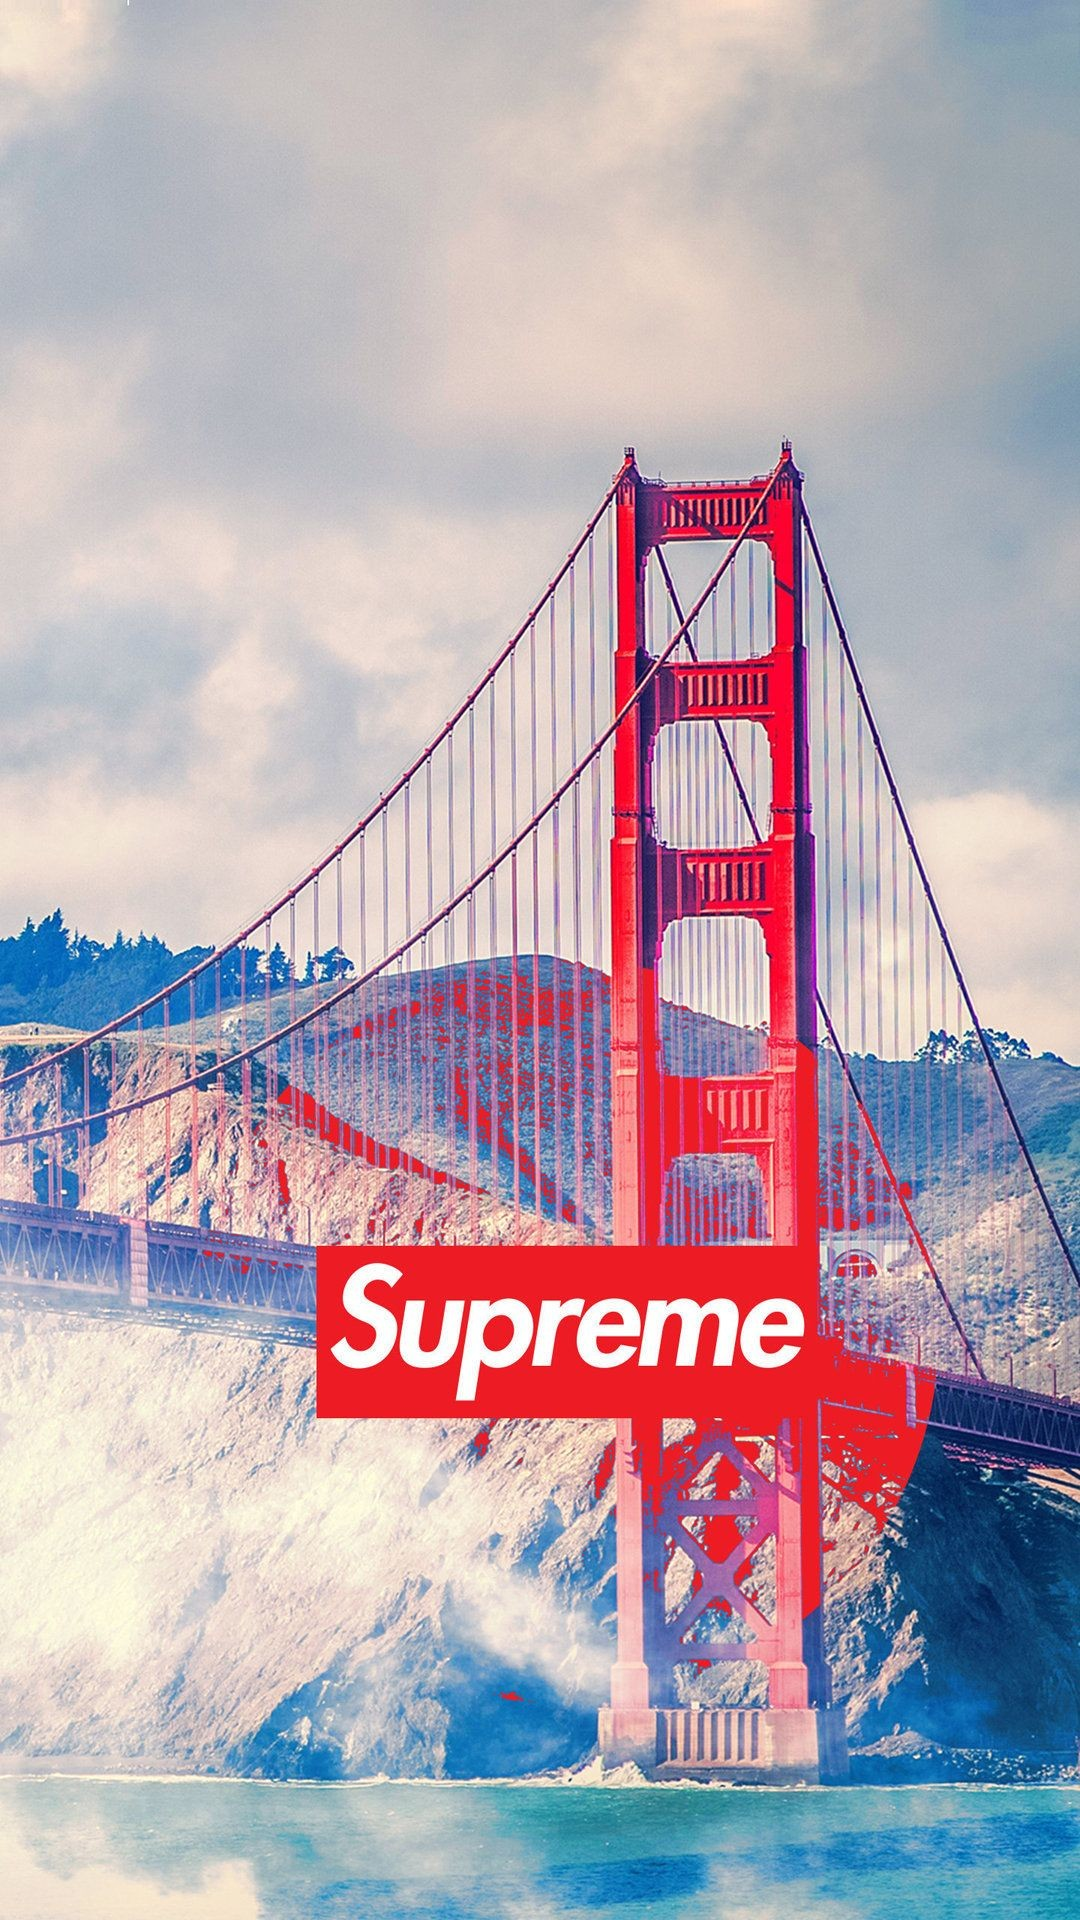 Res: 1080x1920, san francisco supreme - Tap to see more of the Supreme wallpapers! -  @mobile9